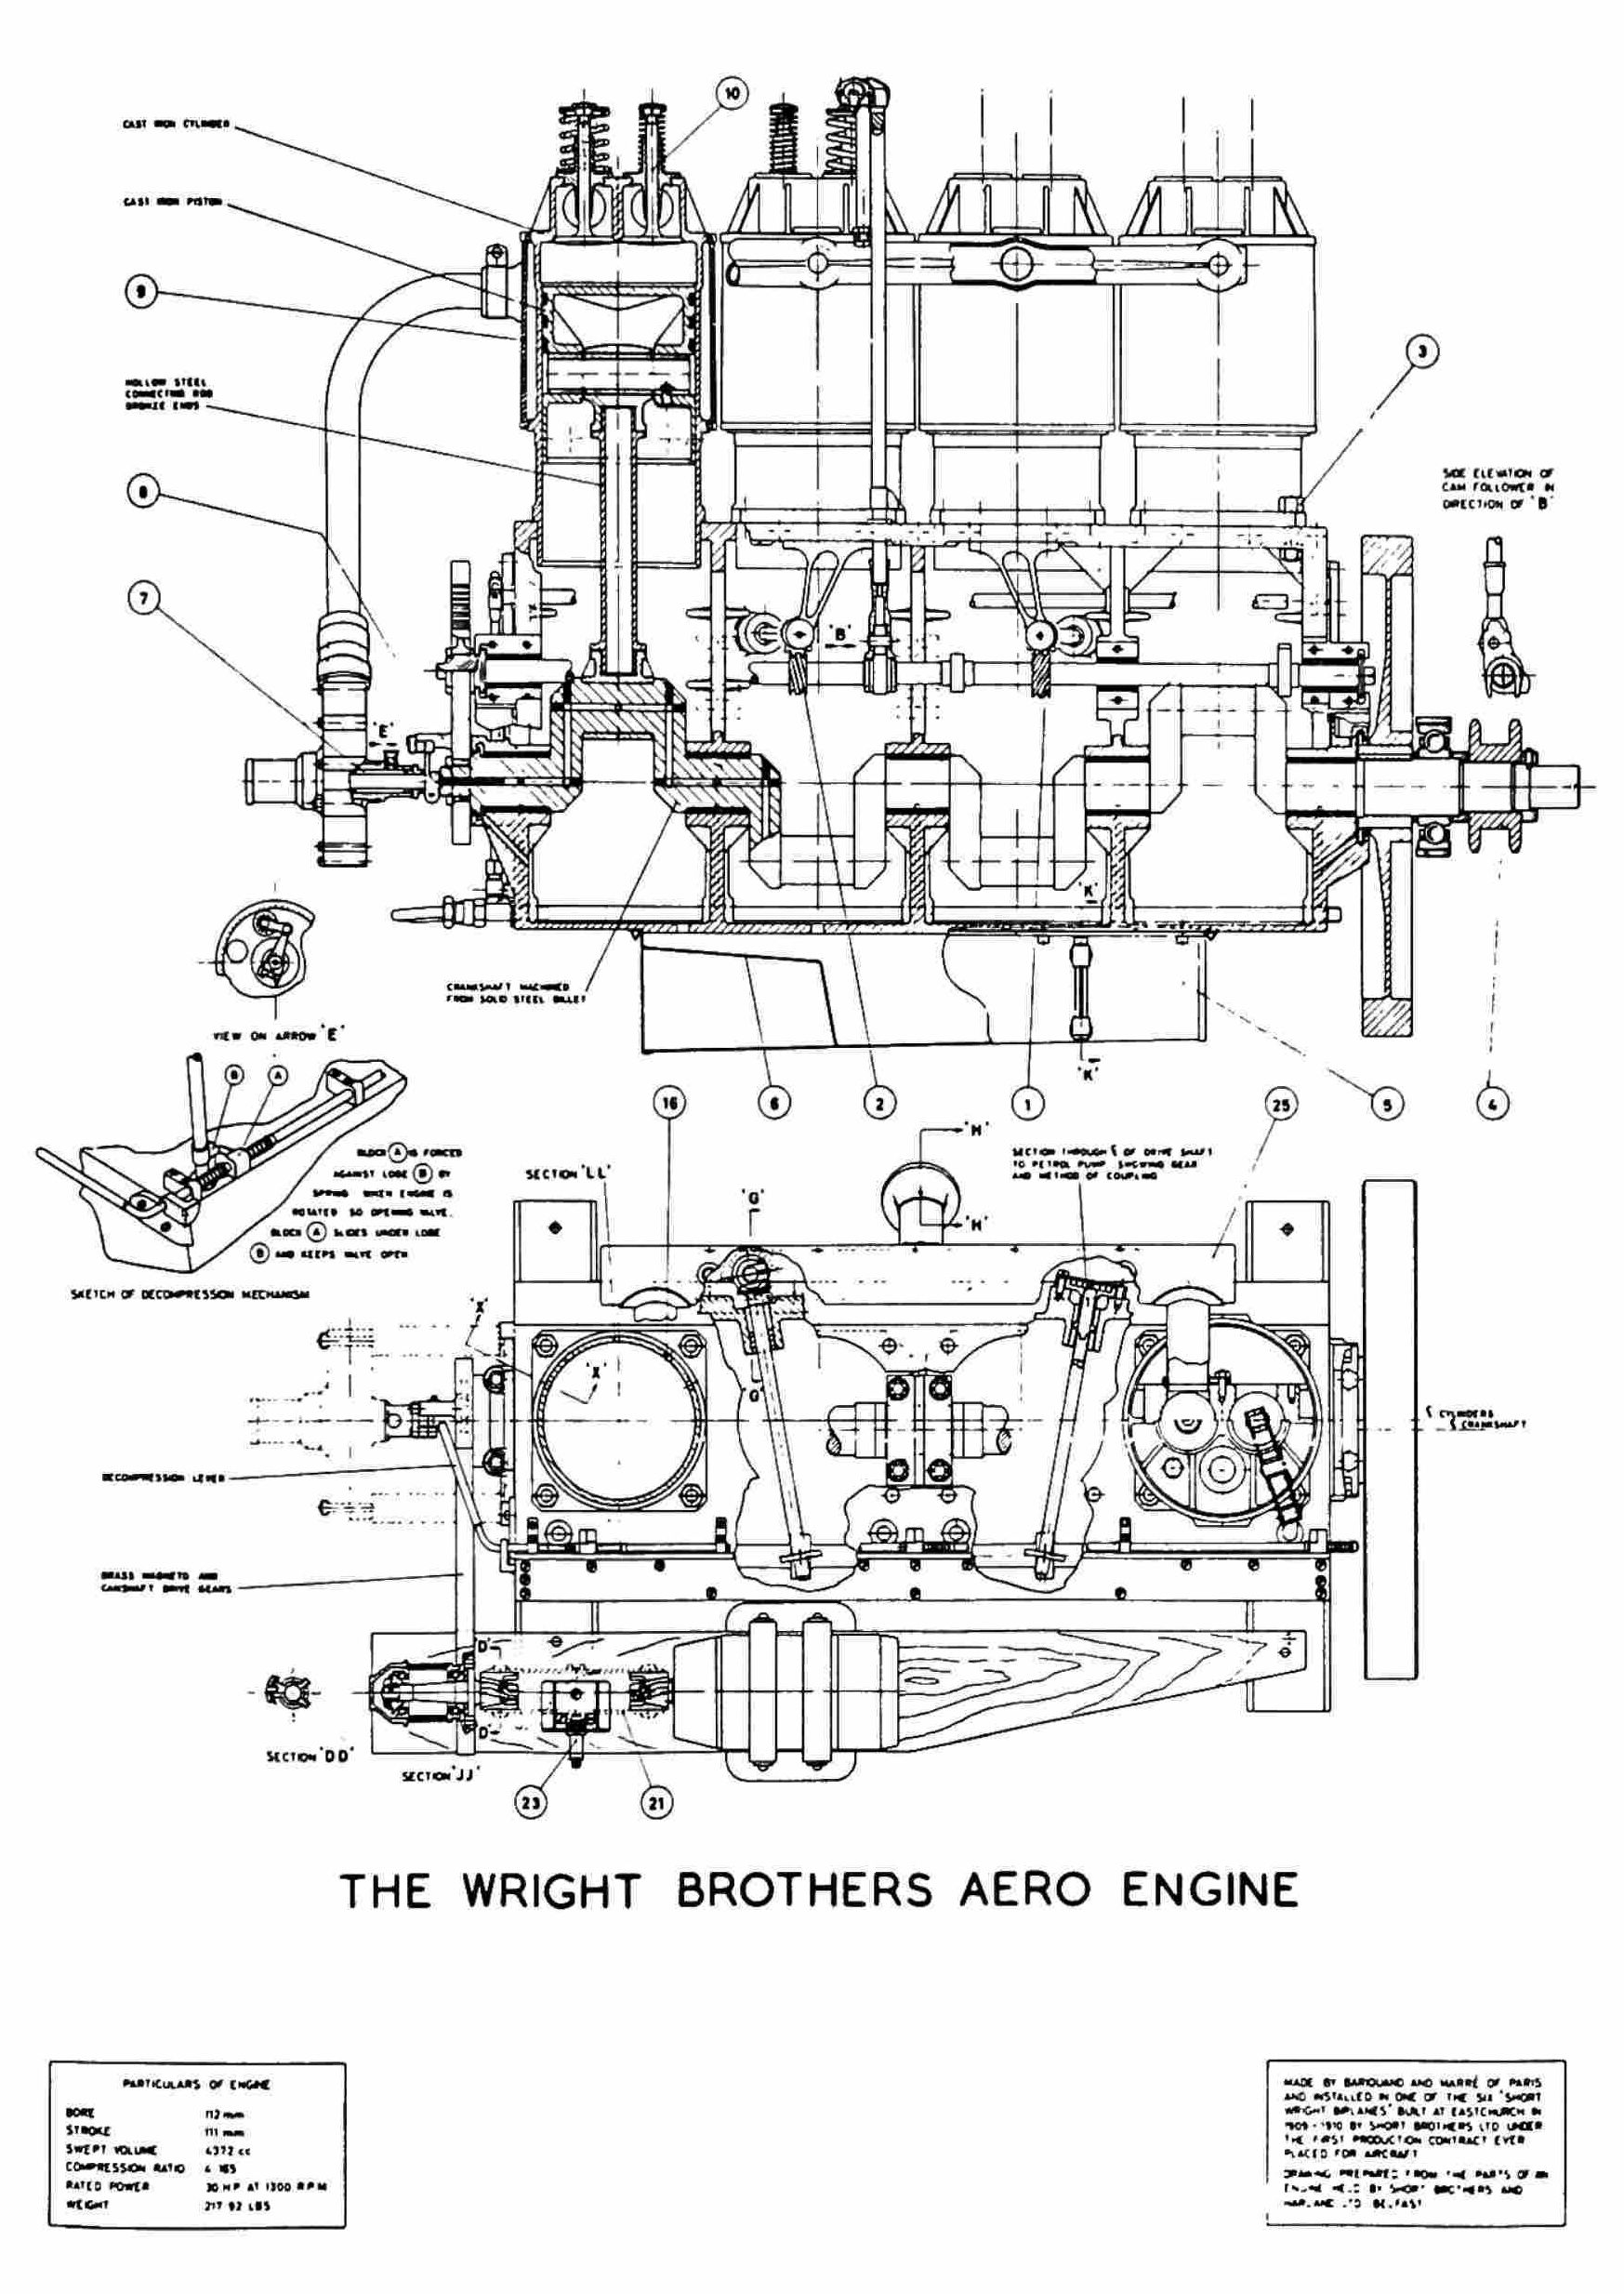 The Wright Brothers Engines And Their Design Leonard S Hobbs